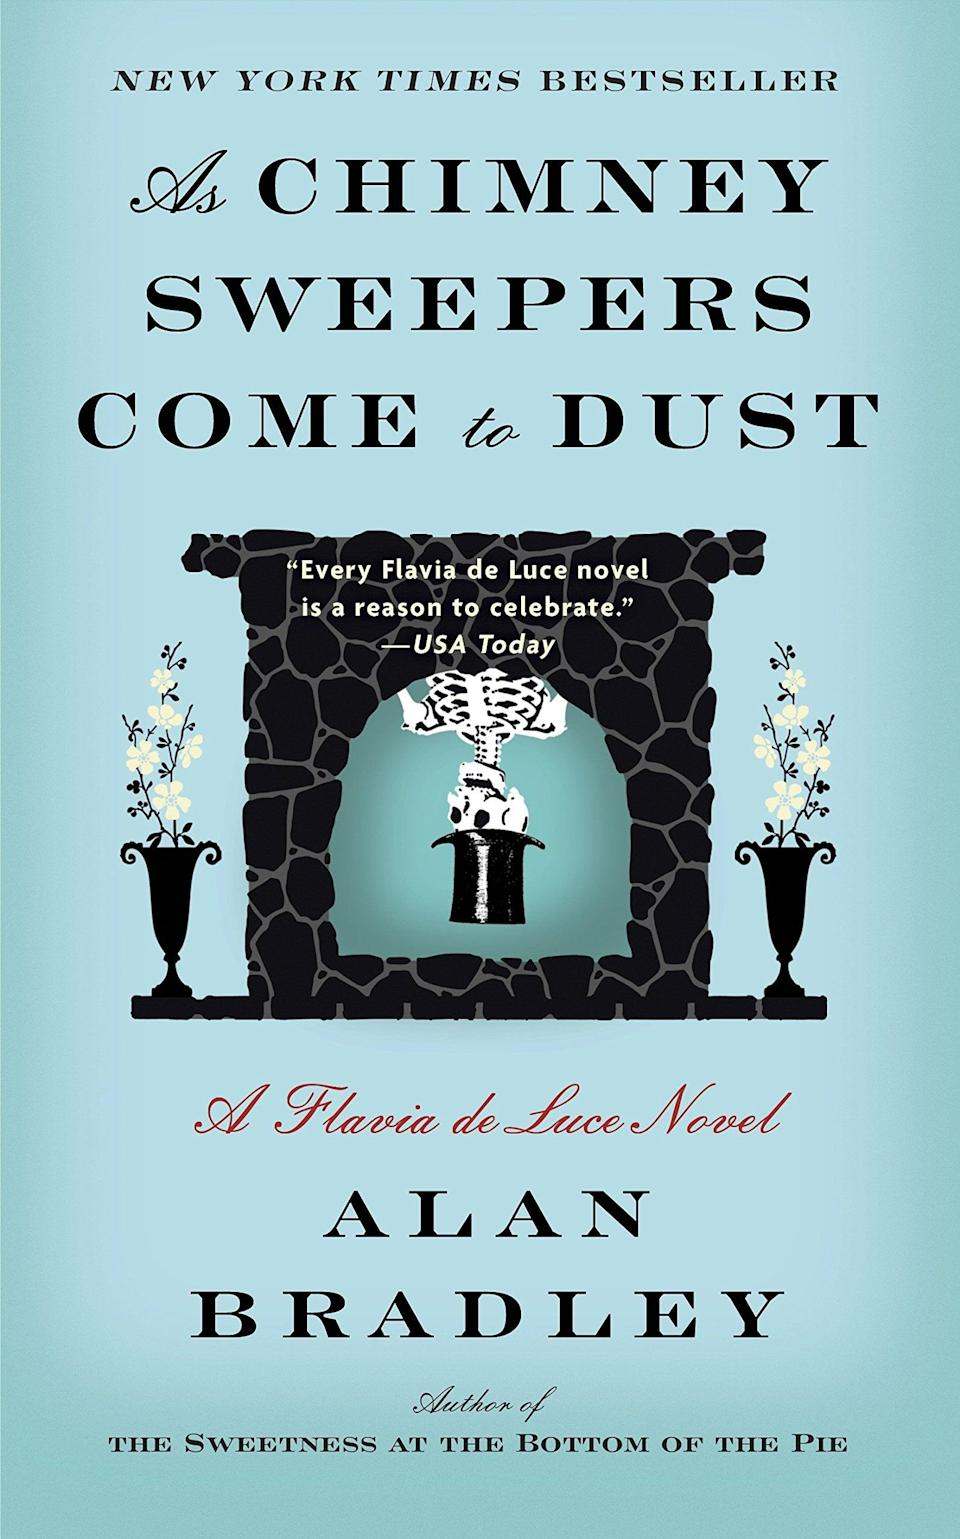 <p>Alan Bradley's <span><strong>As Chimney Sweepers Come to Dust</strong></span> is the seventh book in the author's Flavia de Luce series. Thankfully, the mysteries stand alone, so you can jump in with this delightfully macabre and wry installment that finds 11-year-old detective Flavia stumbling upon a mystery (and a corpse) at her new boarding school.</p>